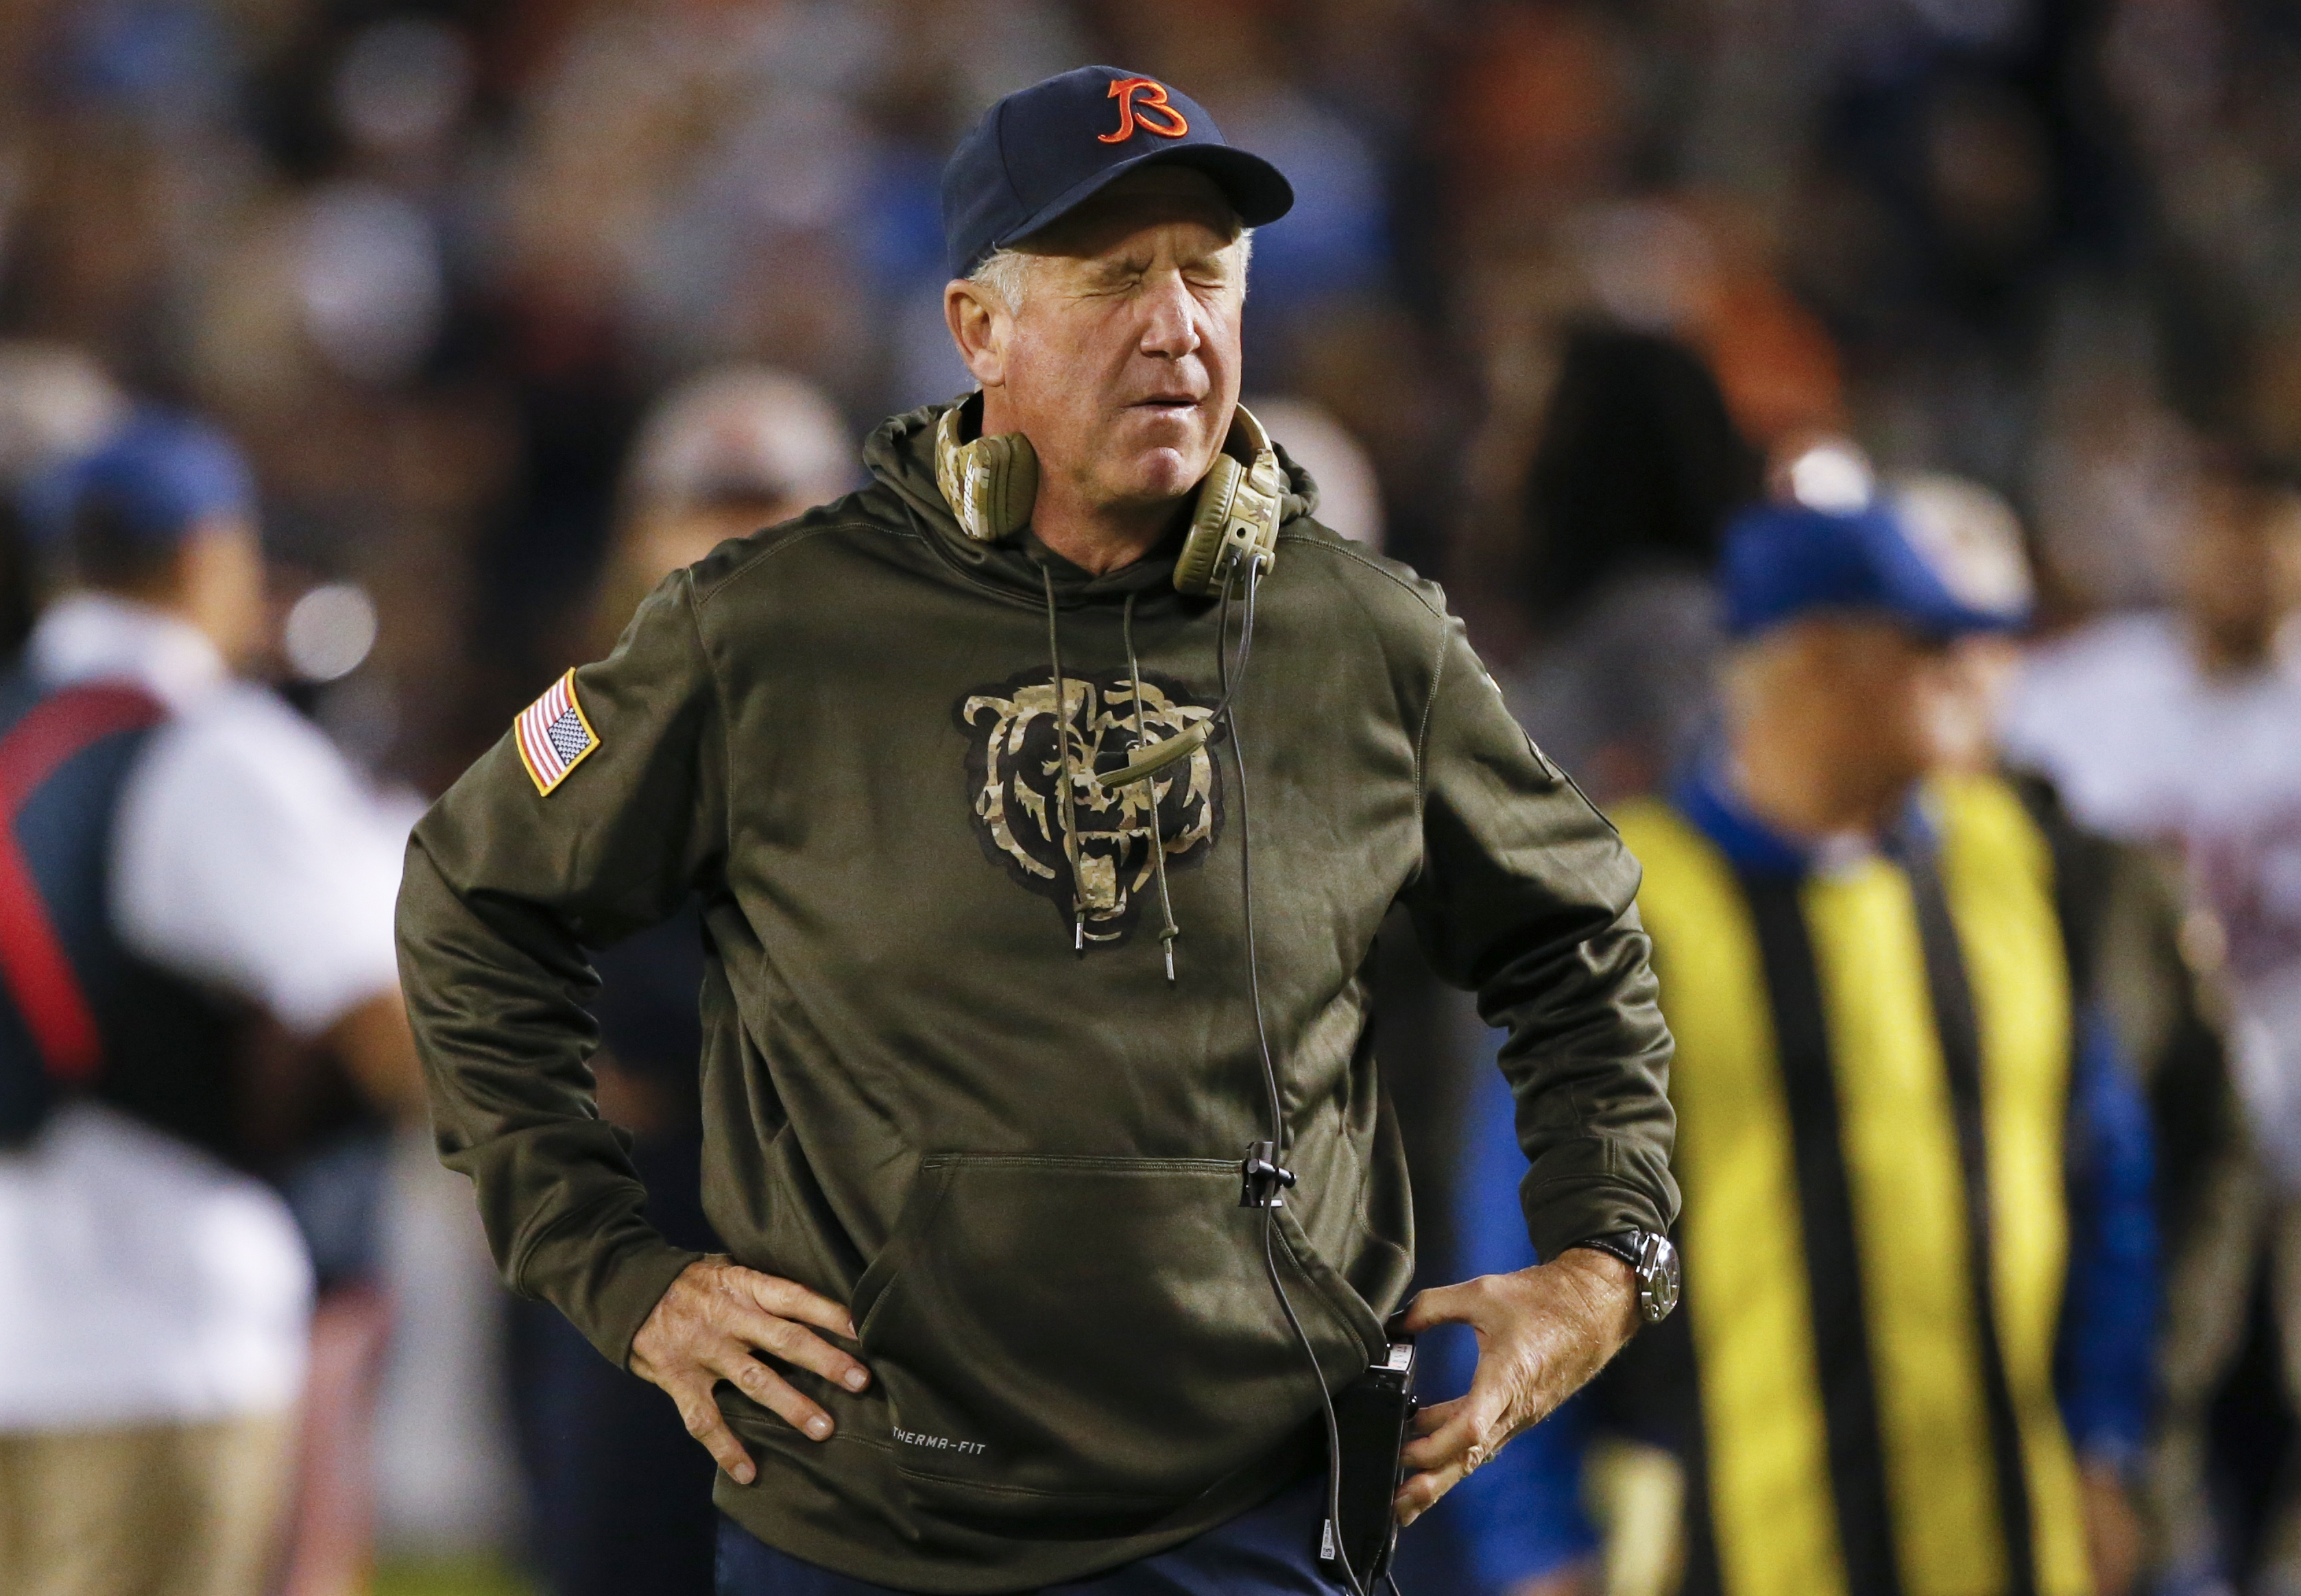 Chicago Bears head coach John Fox reacts during the first half of an NFL football game against the San Diego Chargers, Monday, Nov. 9, 2015, in San Diego. (AP Photo/Lenny Ignelzi)